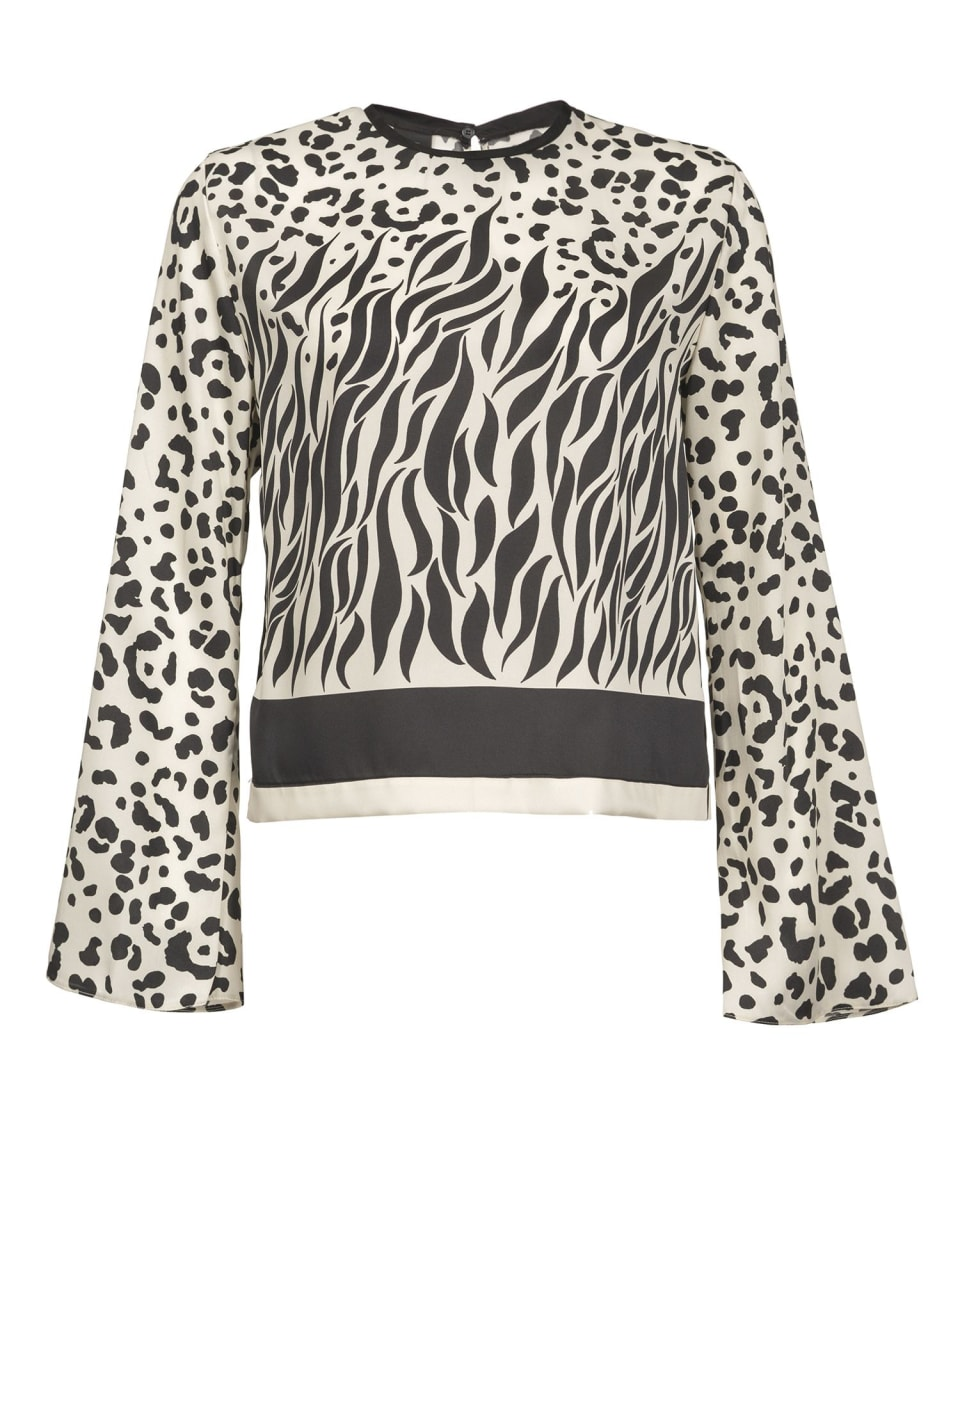 Blusa mix animalier degradè